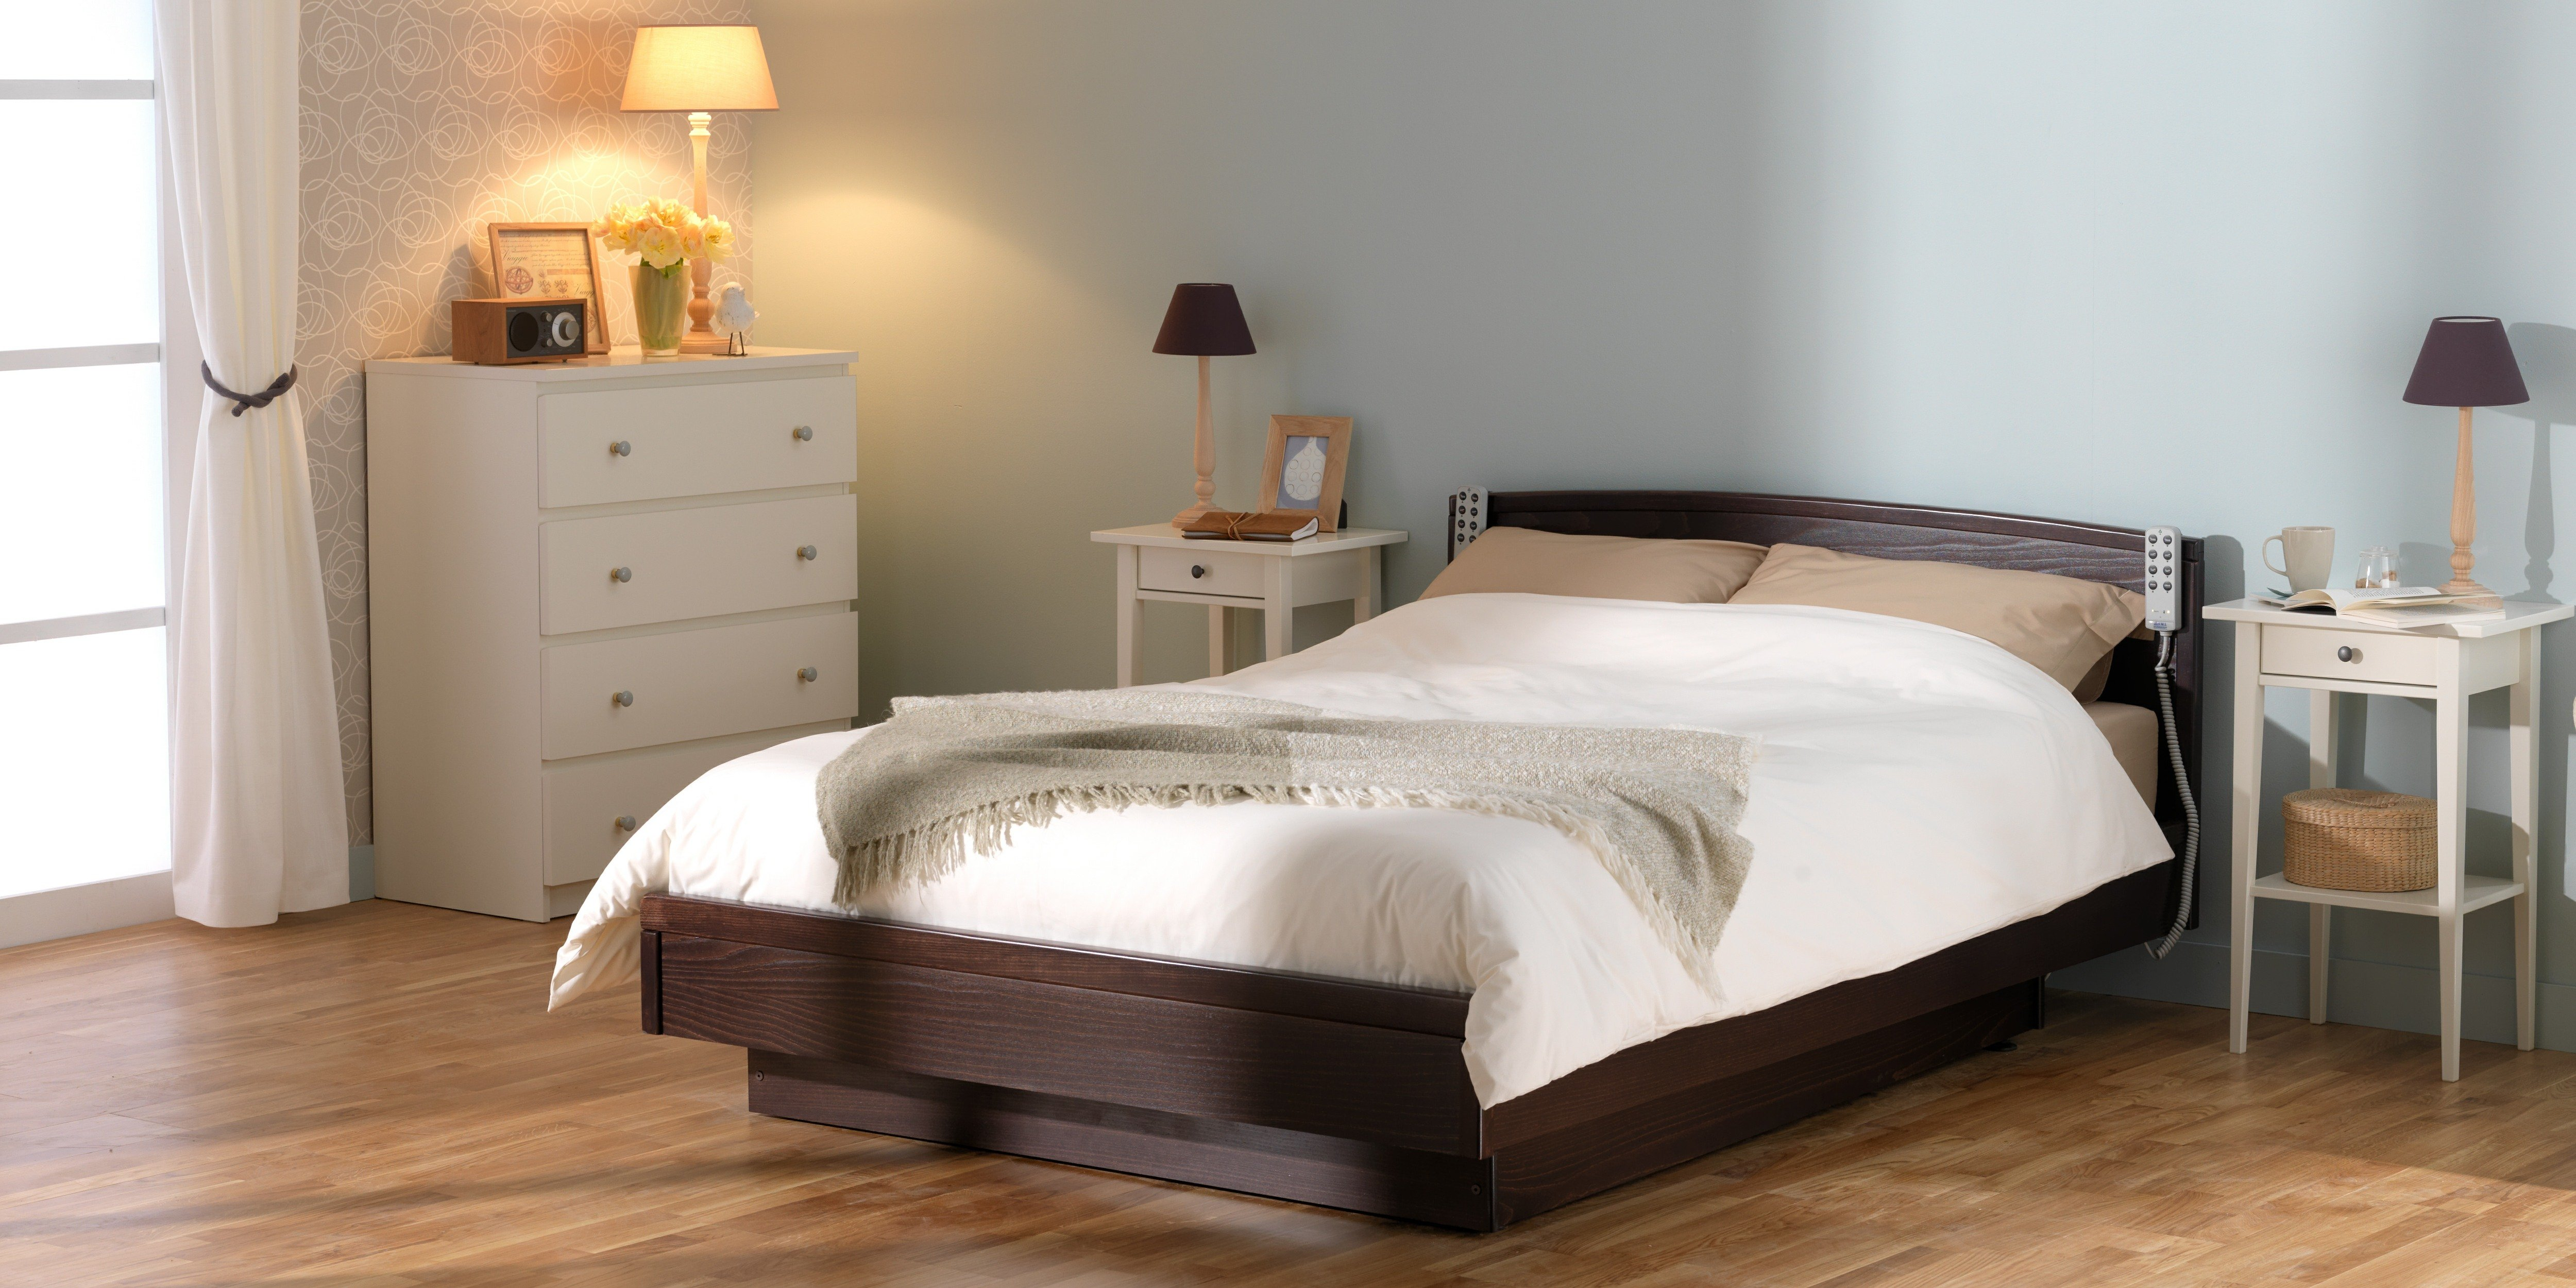 TWIN PROFILING HEIGHT ADJUSTABLE TWIN BED